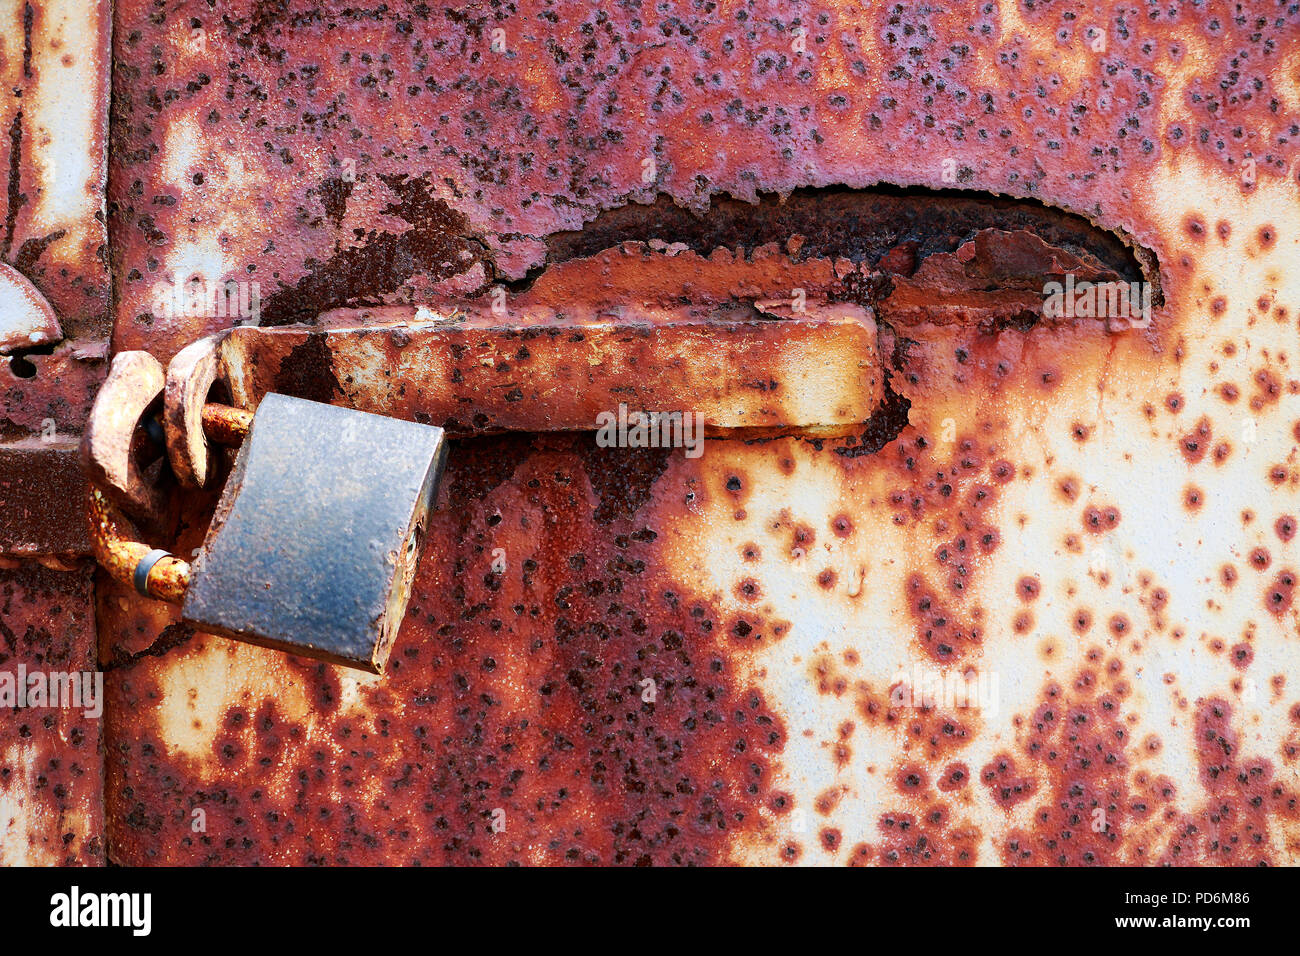 Rusty old lock on red grungy background, textplace Stock Photo